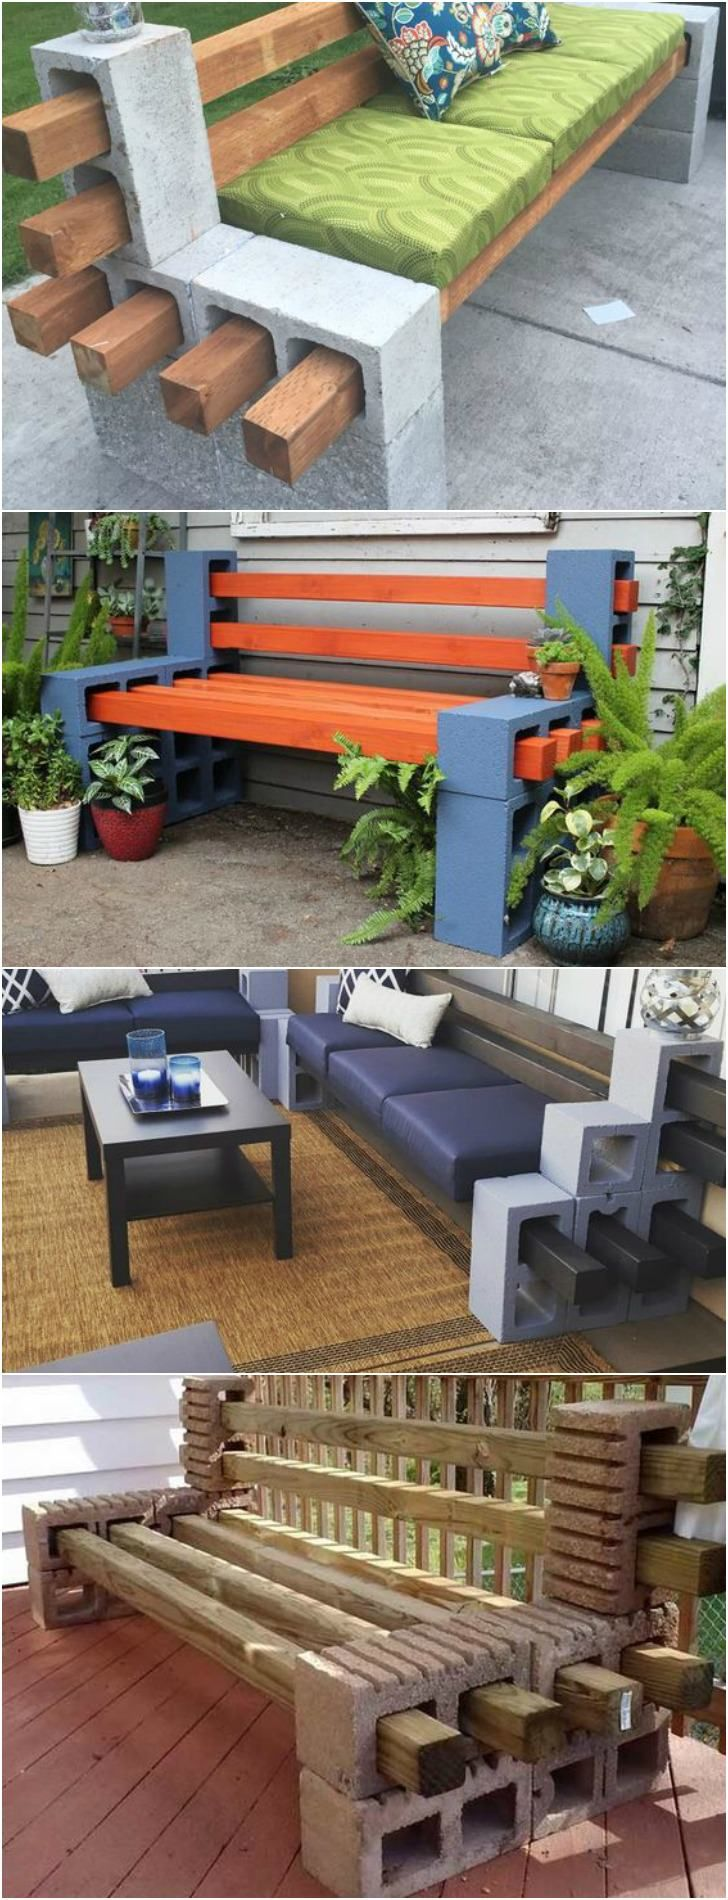 cool How to Make a Bench from Cinder Blocks: 10 Amazing Ideas to Inspire You!